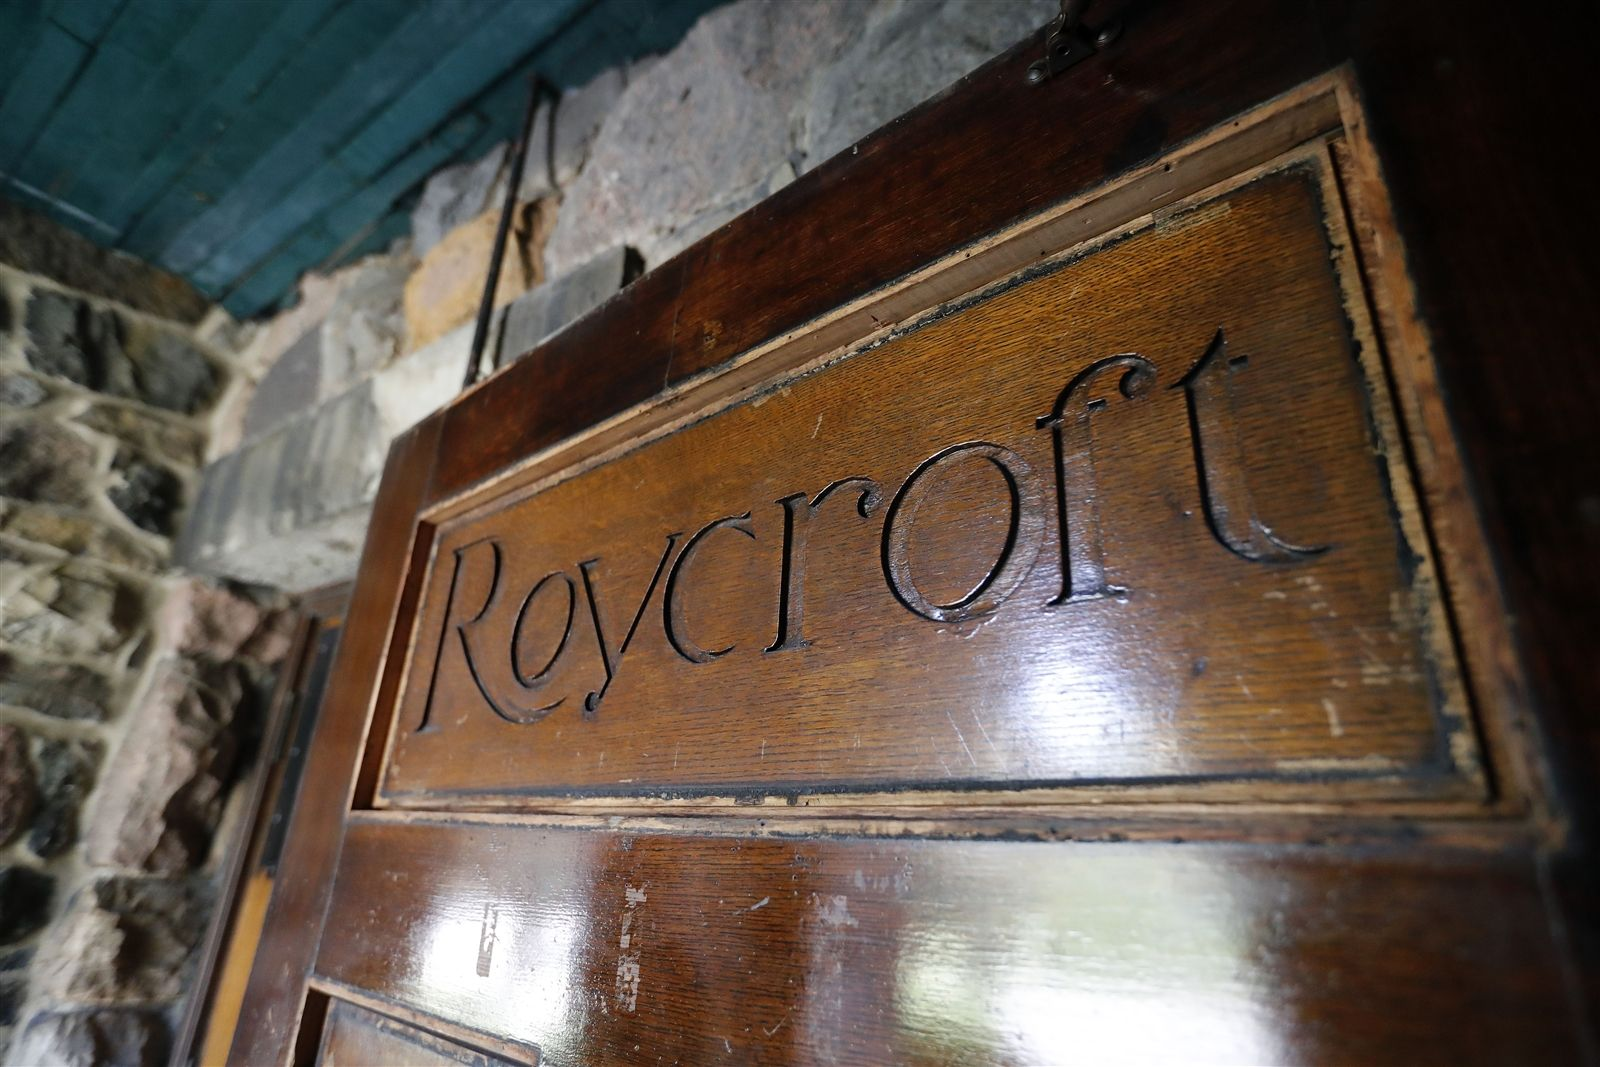 """The Roycroft name and symbol came from the combination of two words:  """"royal"""" and """"craft,"""" symbolizing an object so well-made it was fit for royalty. The Roycroft logo design has a circle with a two-armed cross above it.  Believed to be from medieval times, it was used by monks at the end of their illuminated manuscripts. Founder Elbert Hubbard put the R inside the circle to make it represent the Roycroft."""